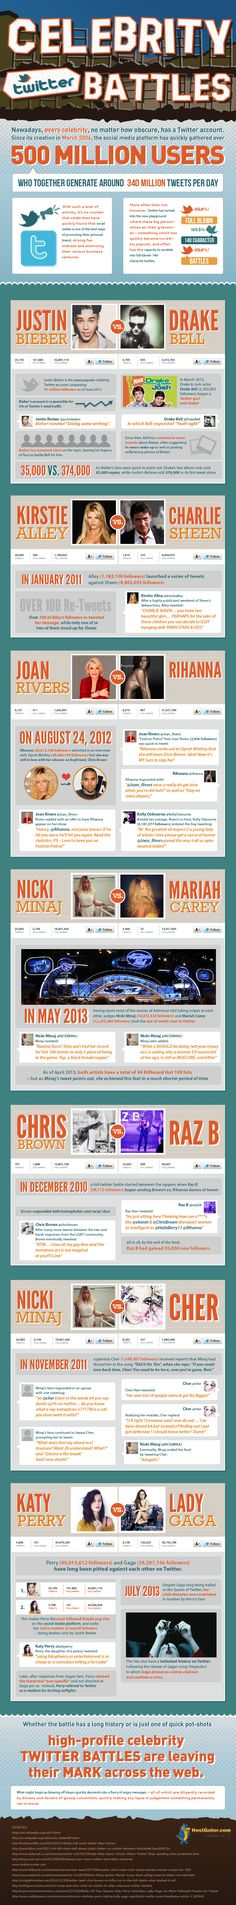 7 Famous Celebrity Twitter Fights